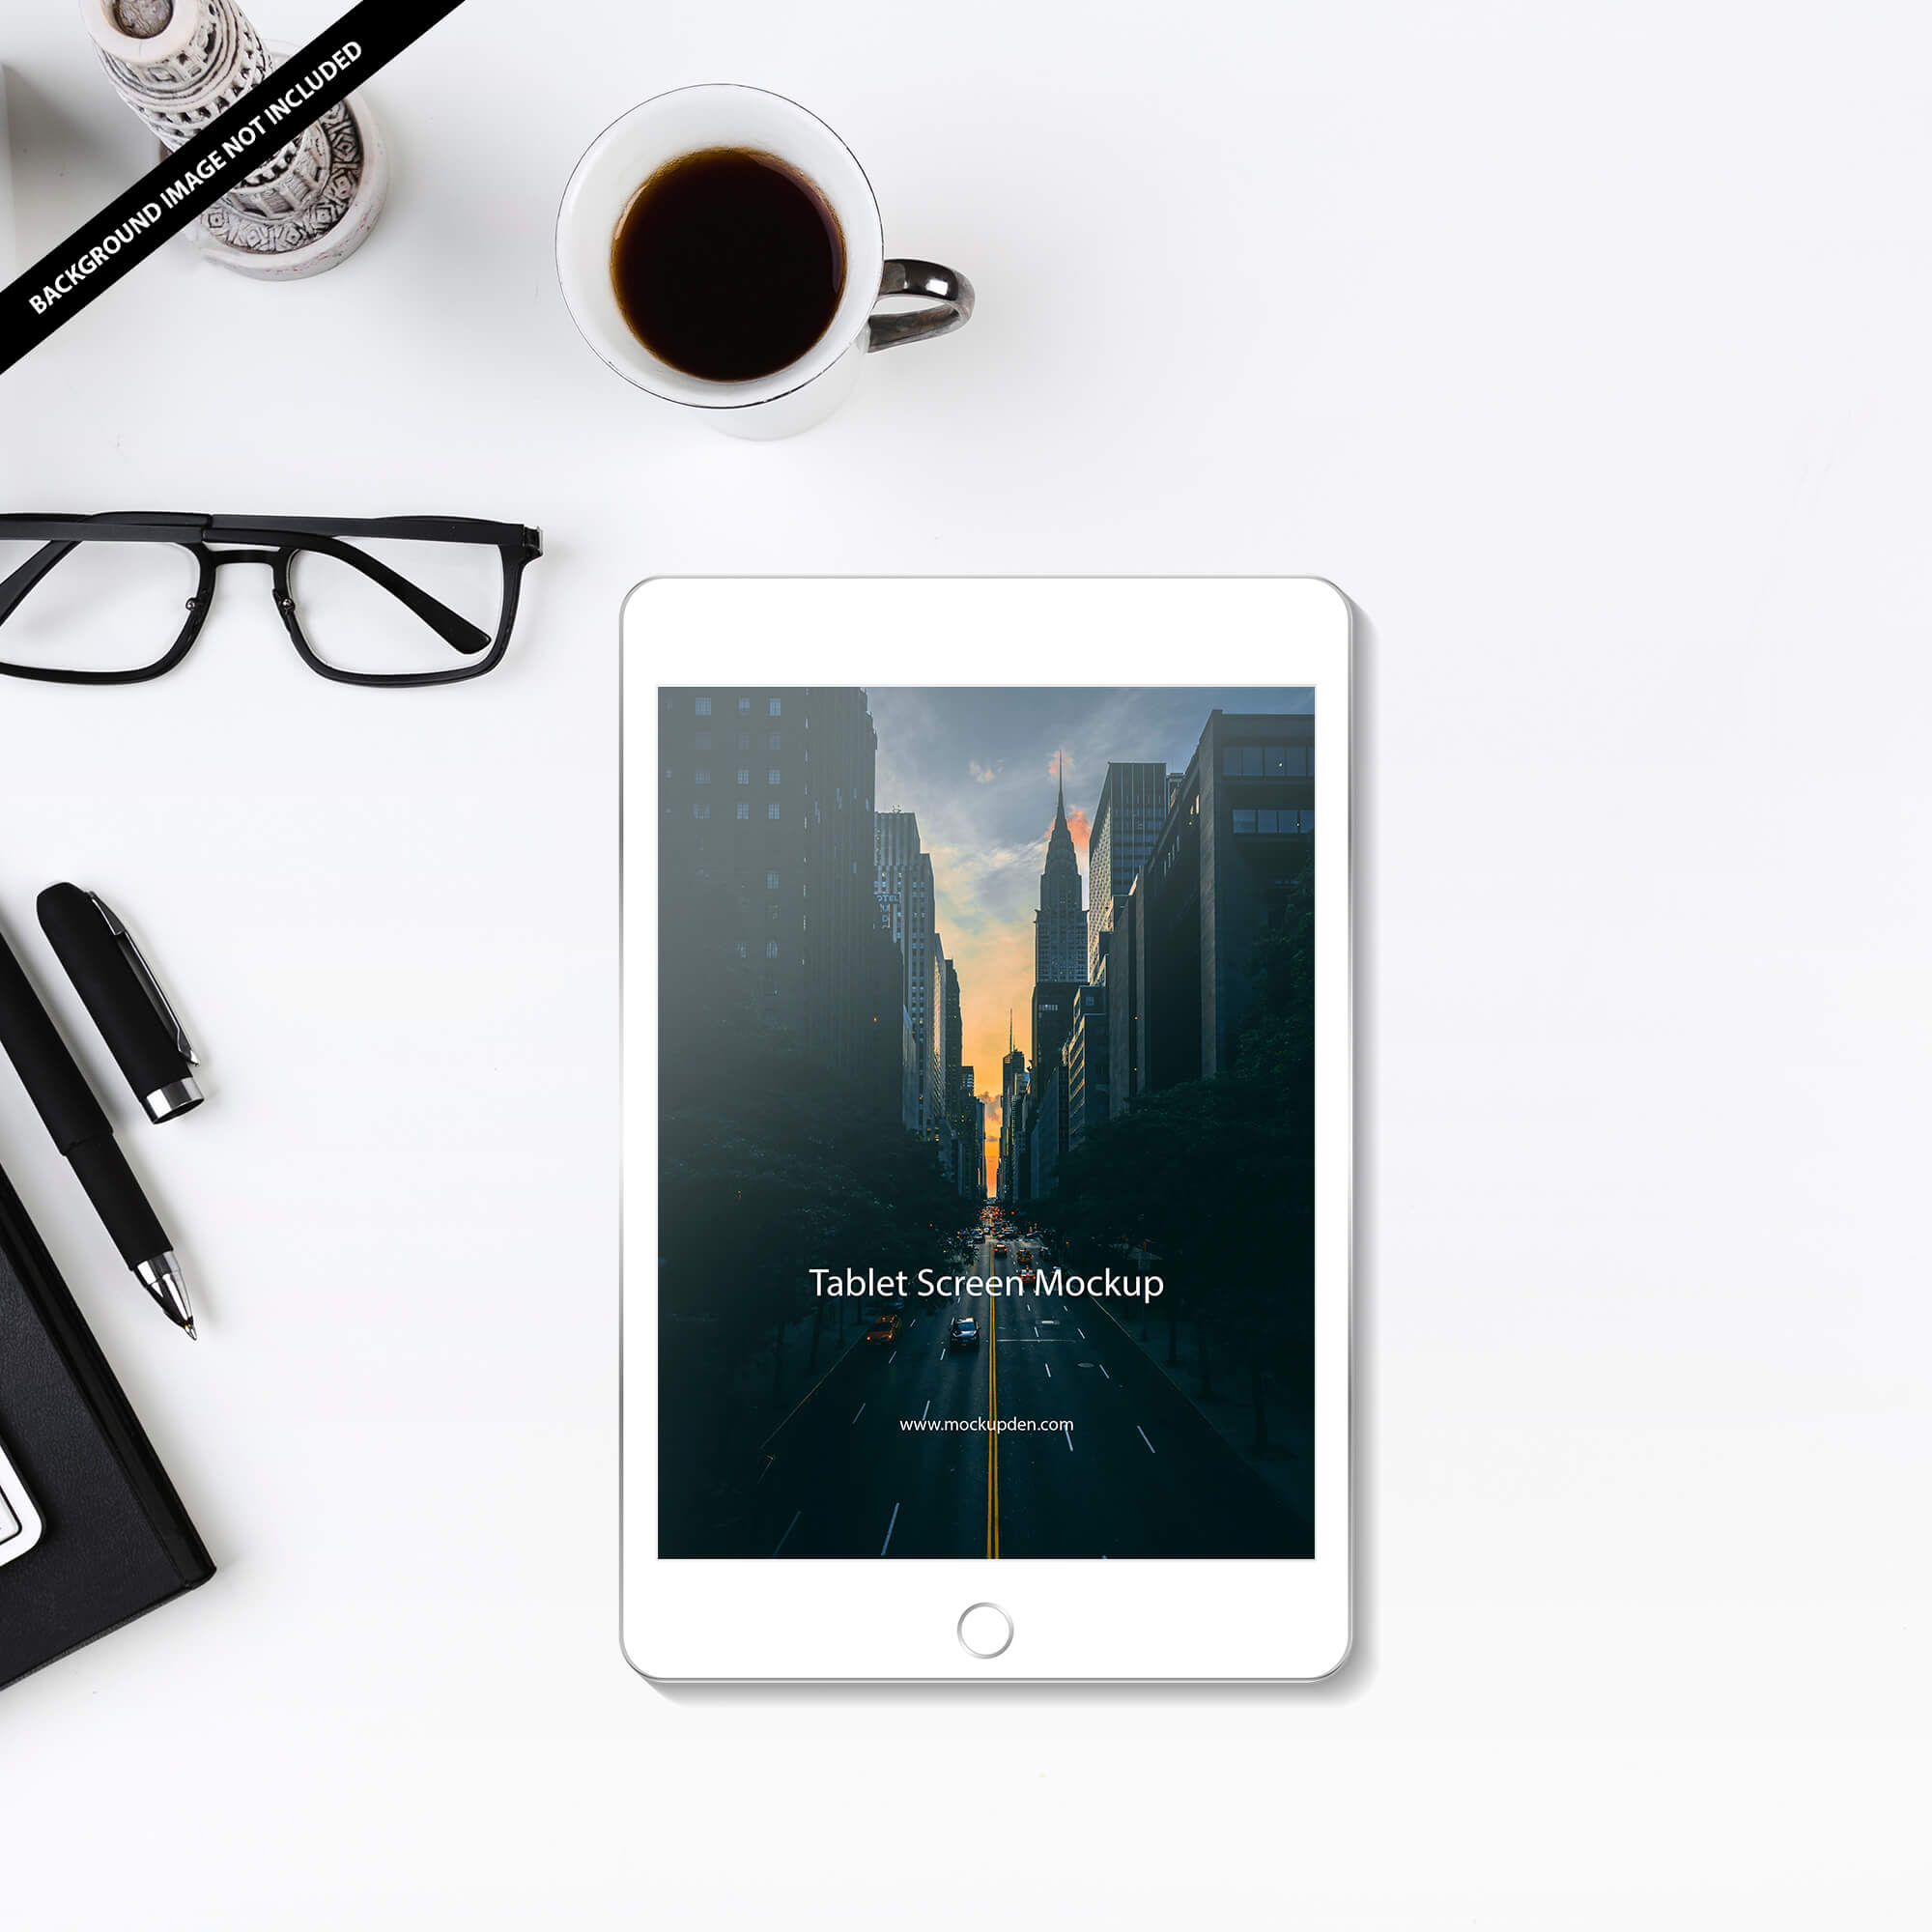 Free Tablet Screen Mockup PSD Template